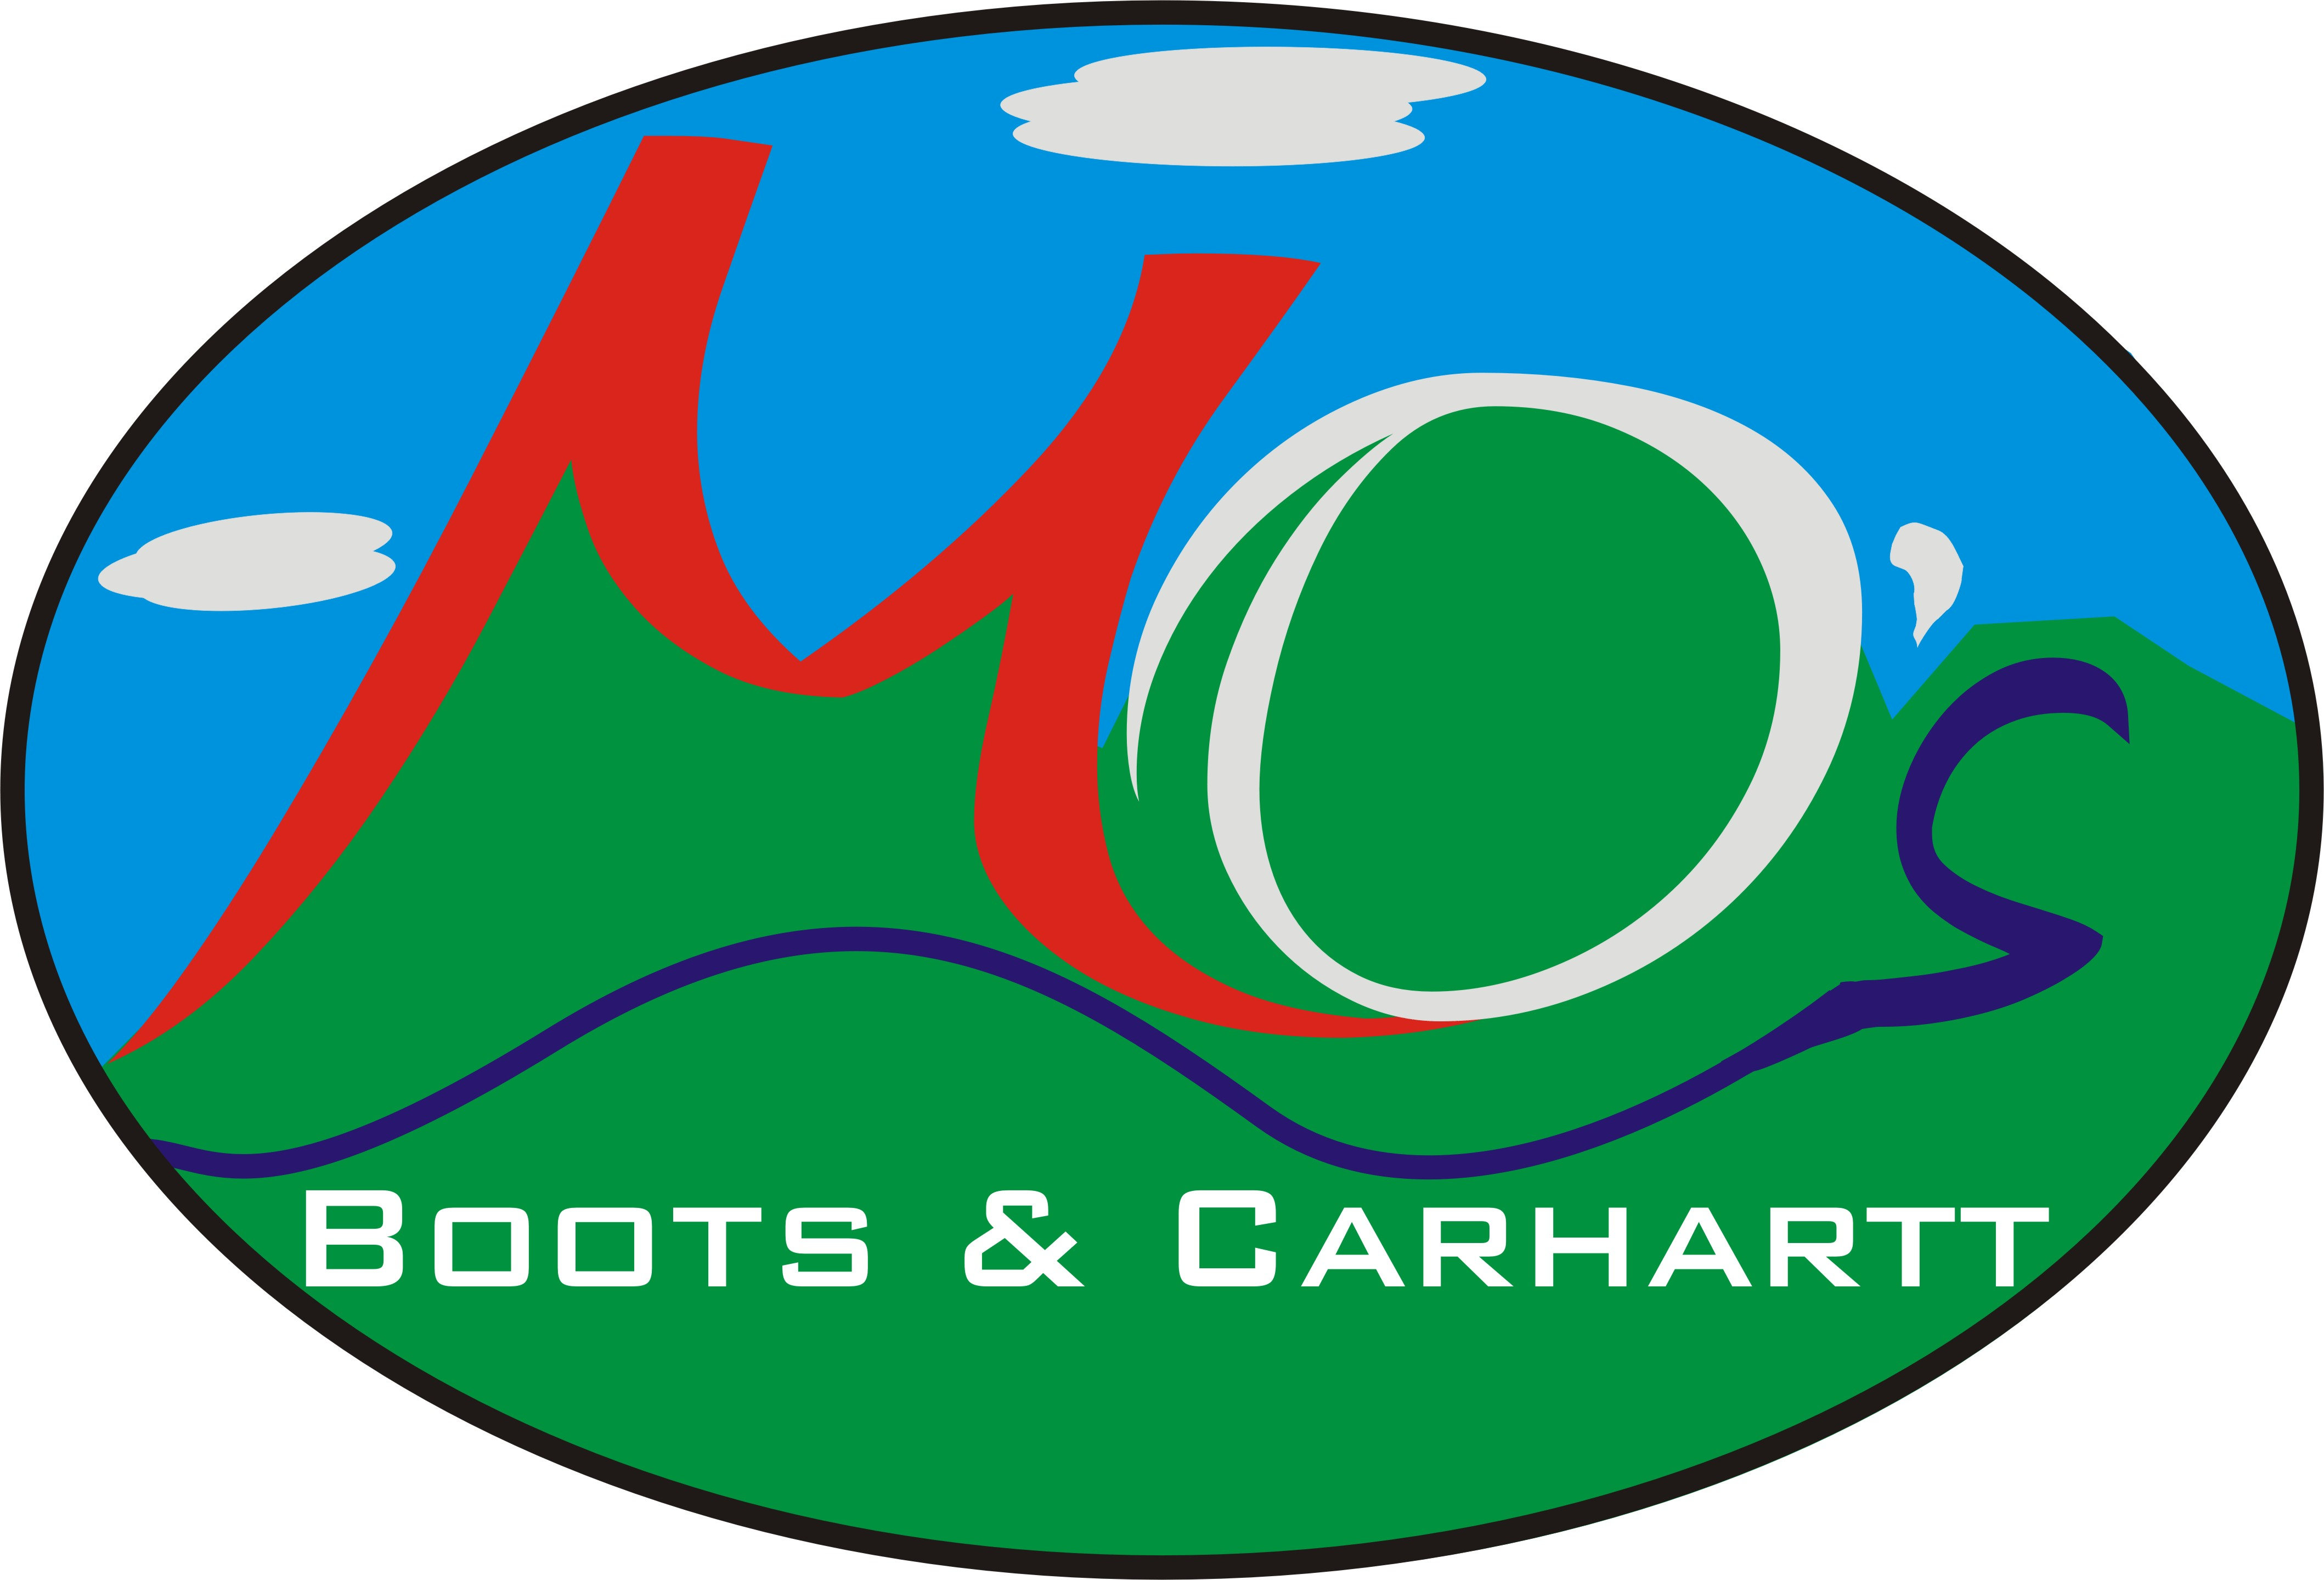 MO's Boots